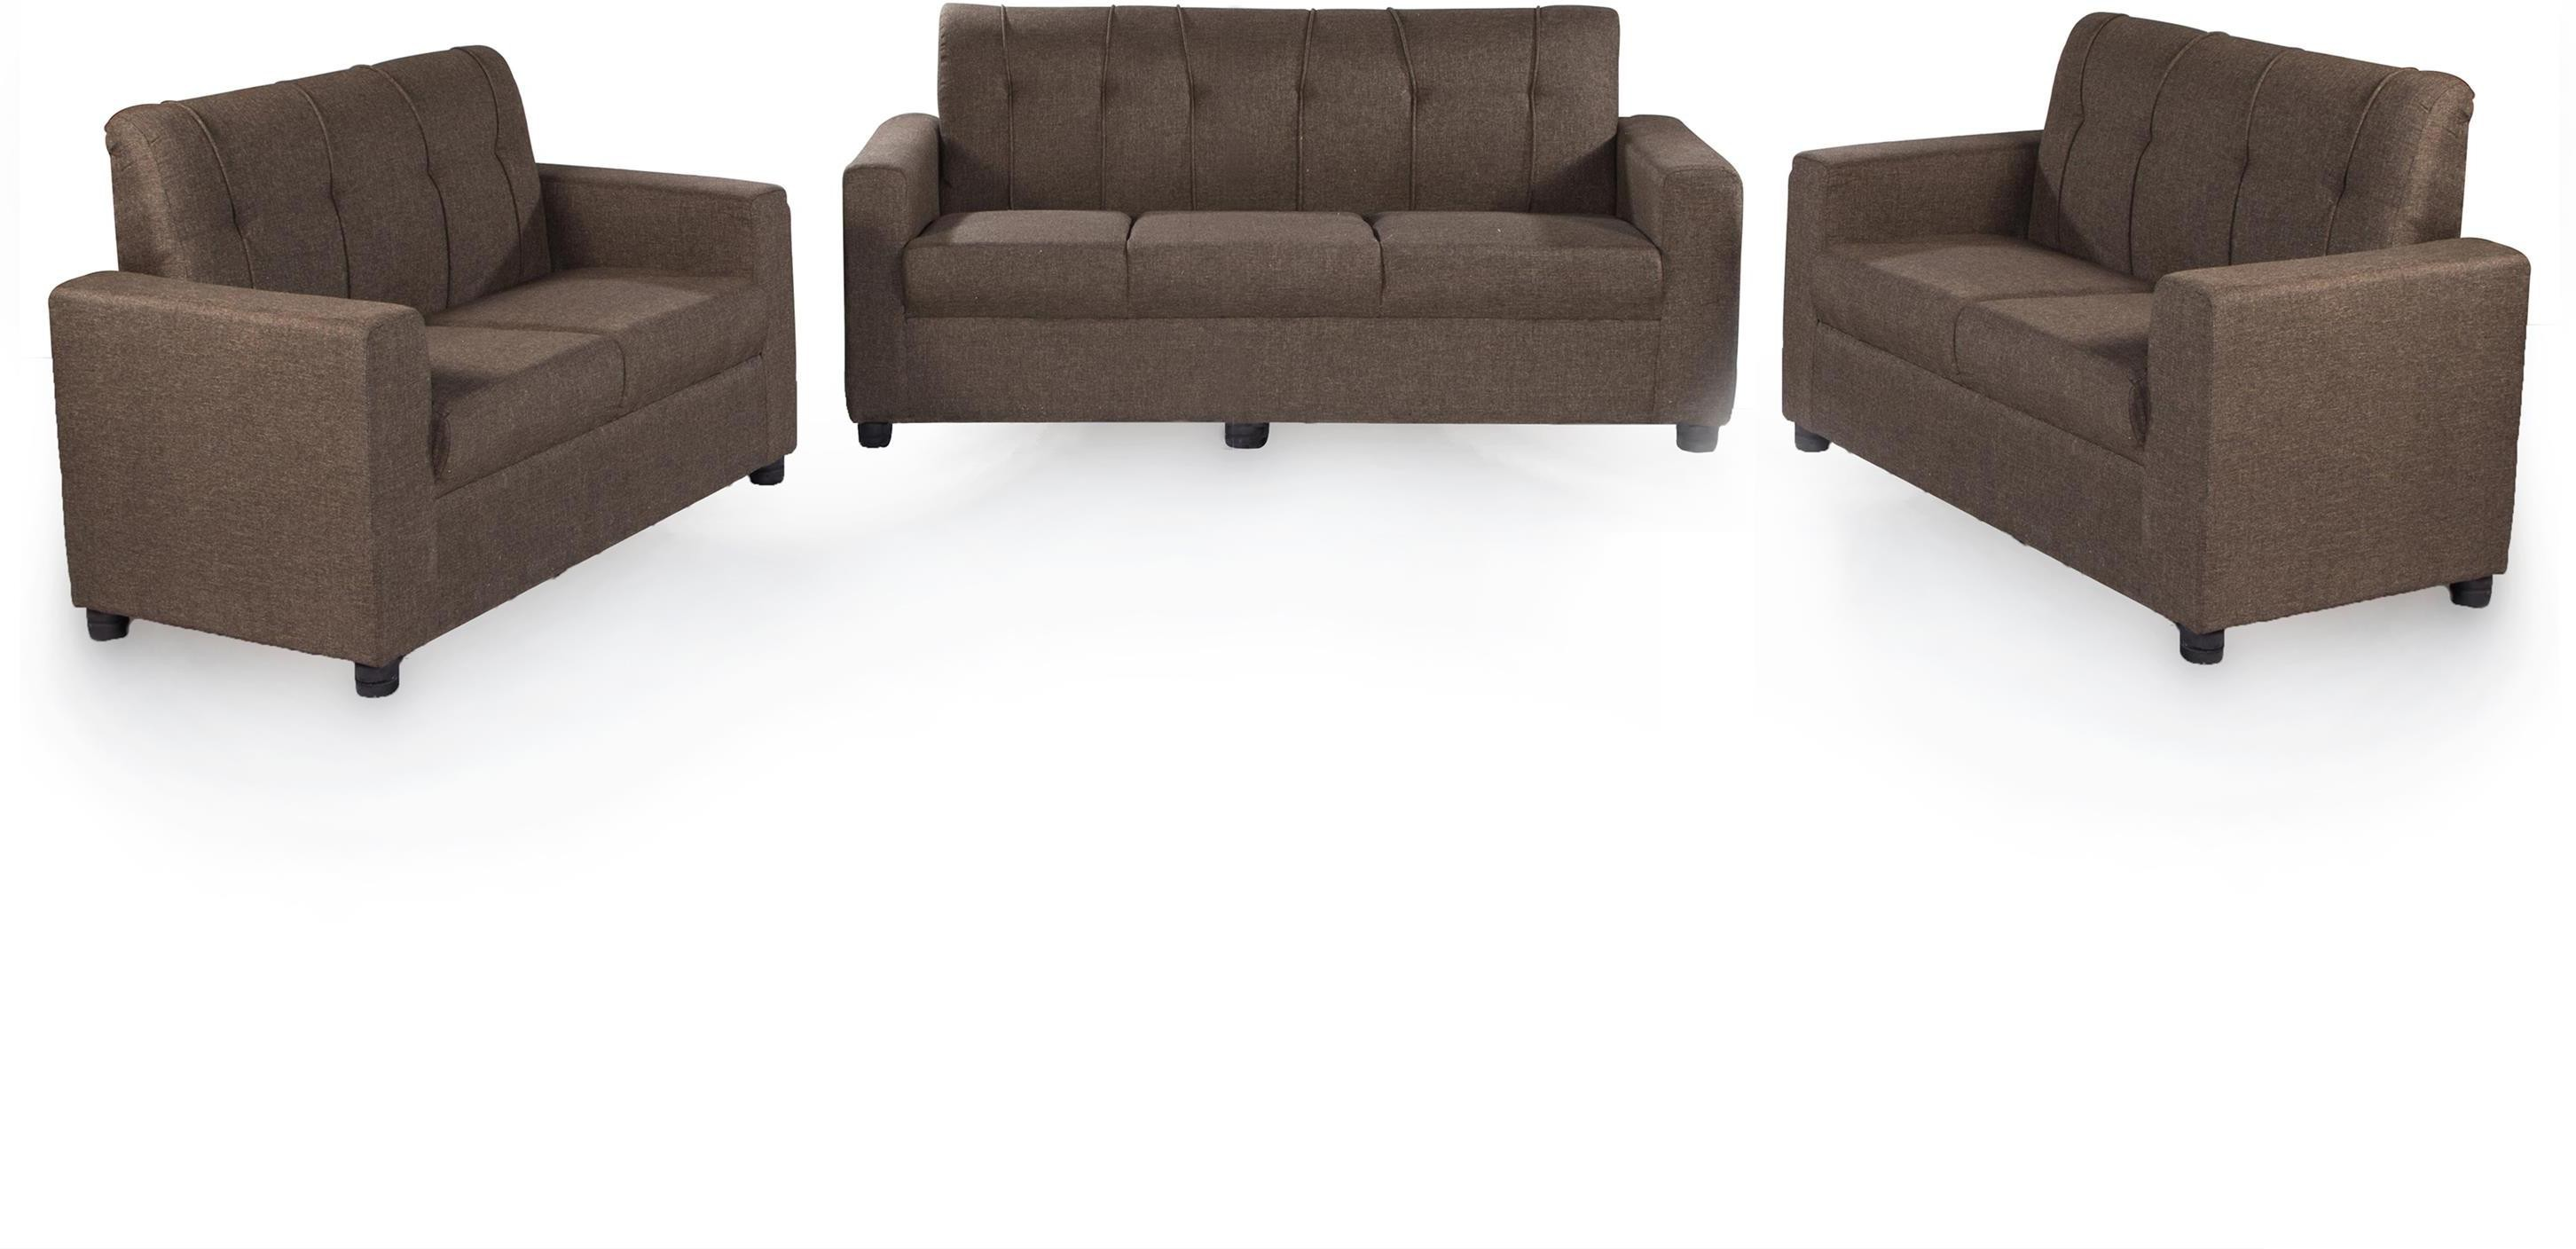 Sofa Set Offers In Mumbai Furnicity Fabric 3 2 2 Brown Sofa Set Configuration Straight